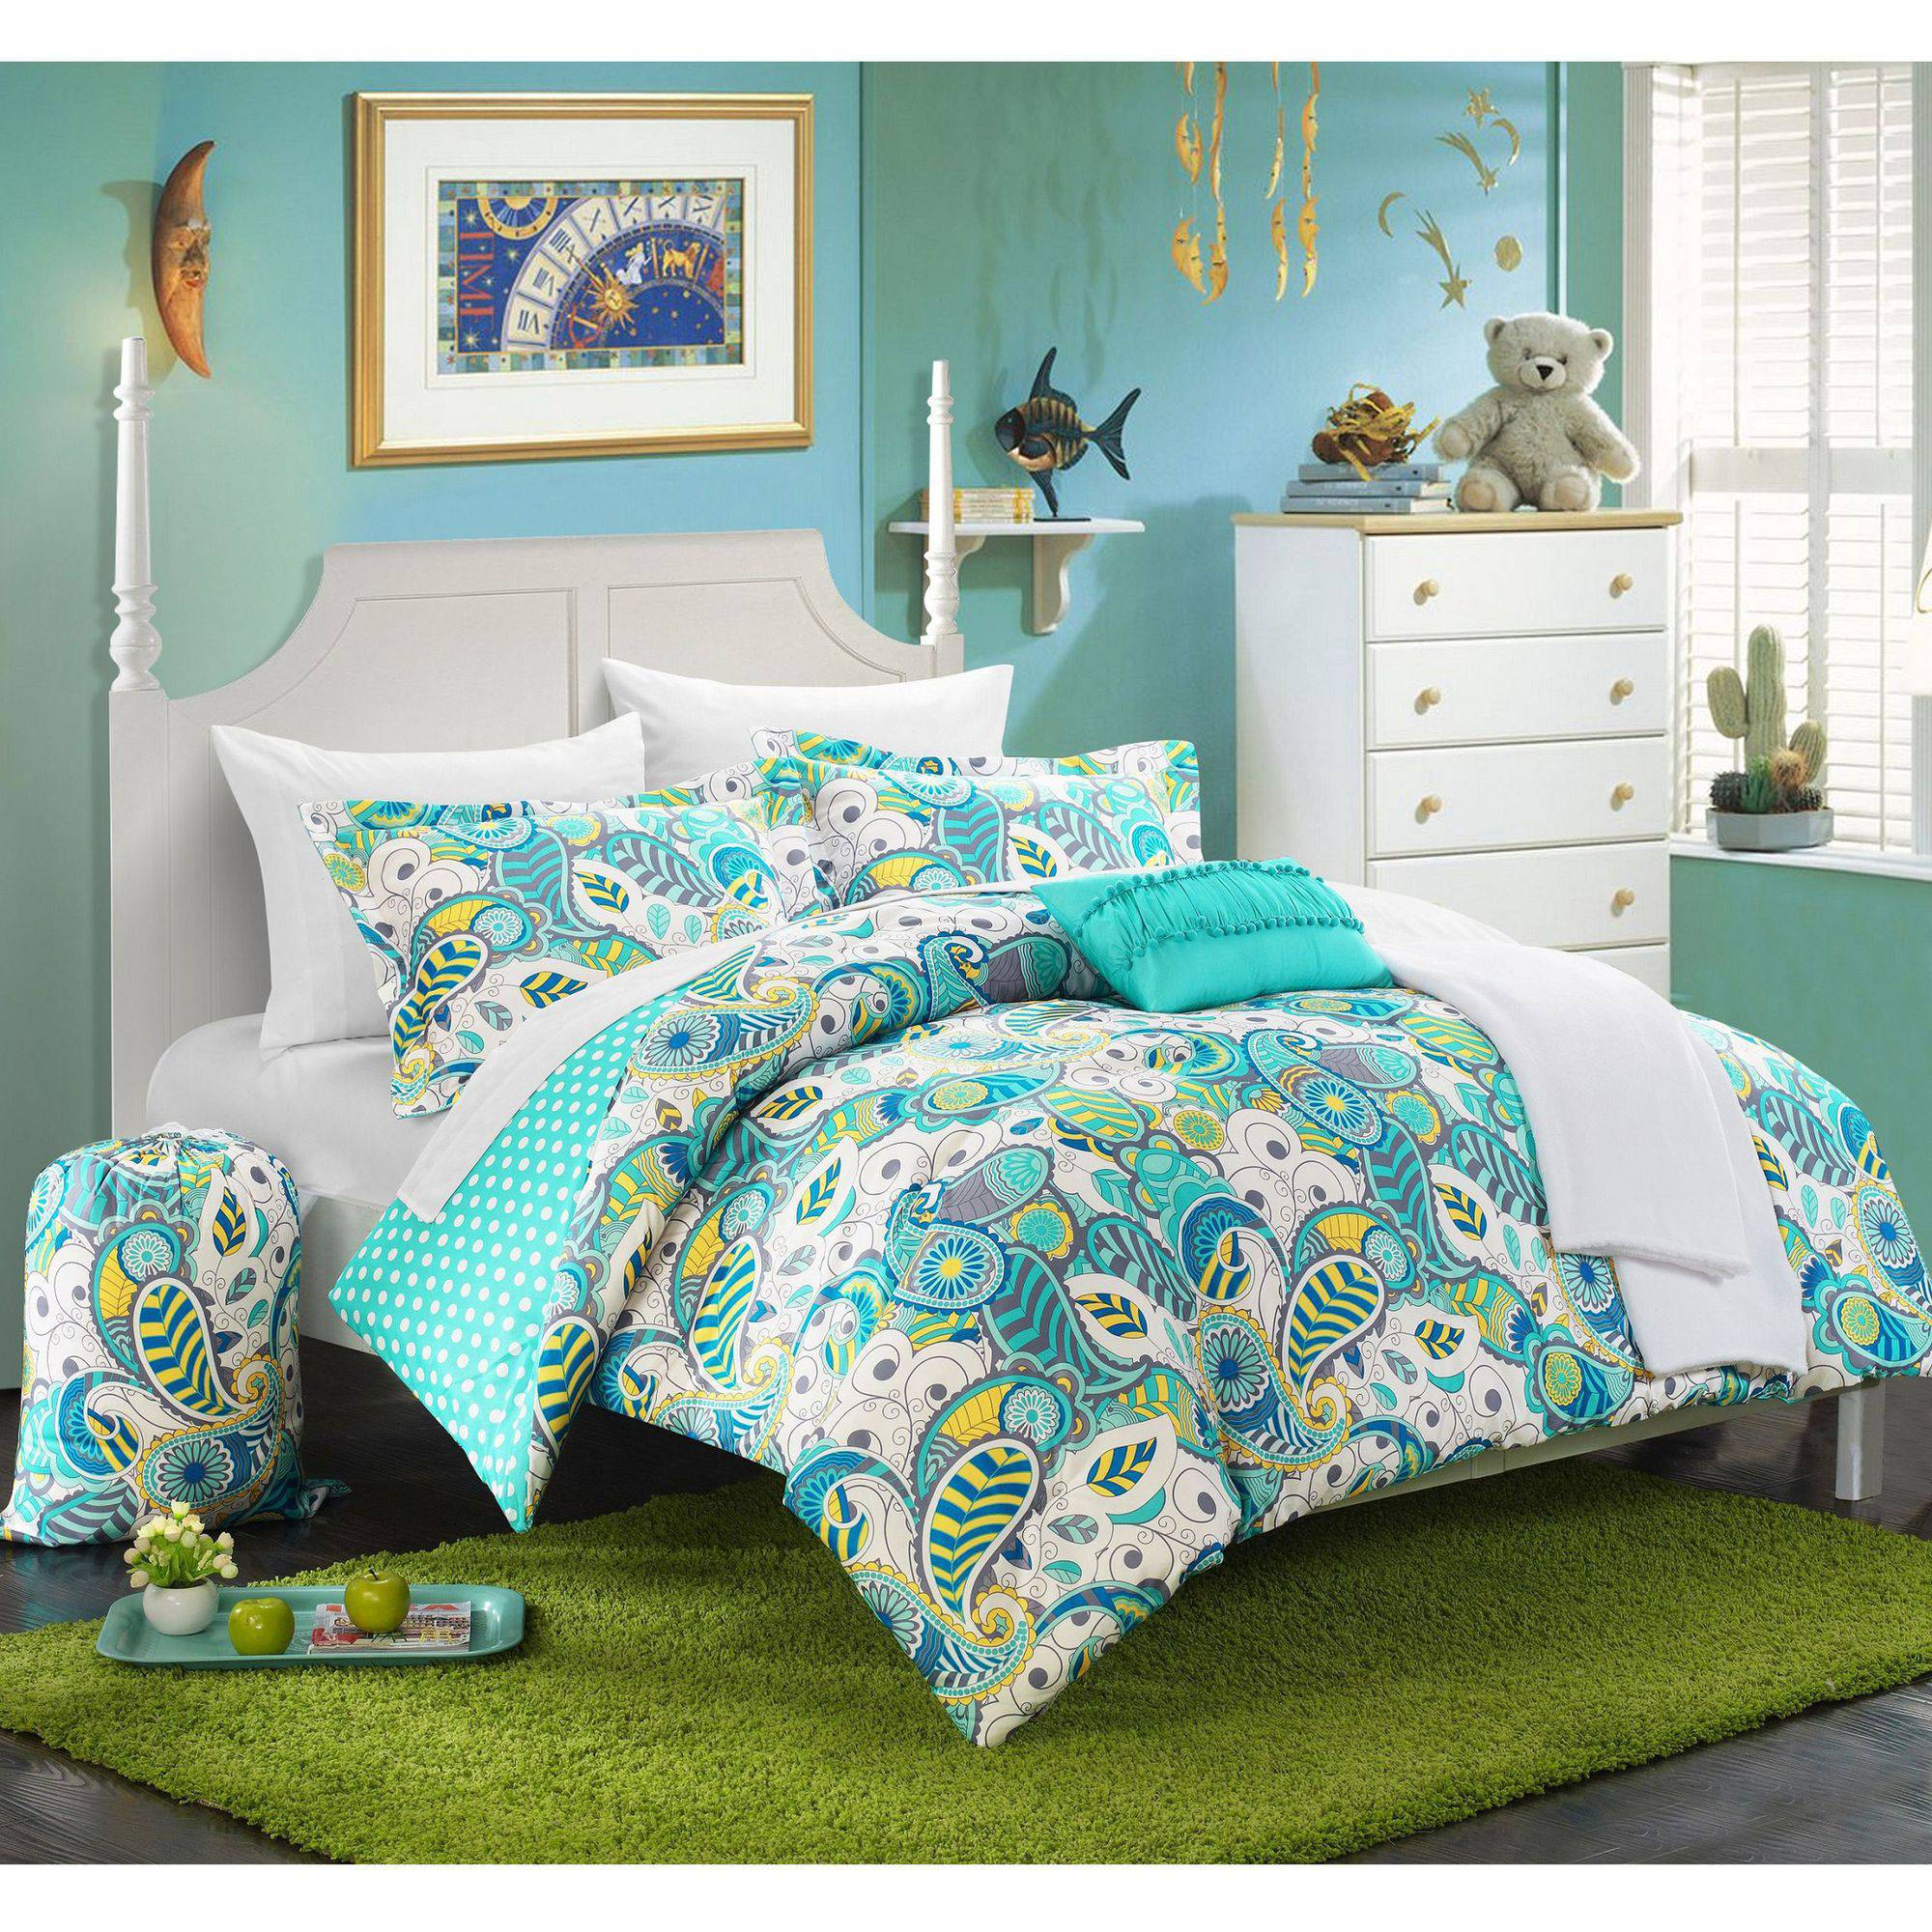 Blue polka dot bedding - Chic Home 10 Piece Duchess Paisley And Polka Dot Printed Reversible Comforter Set Walmart Com